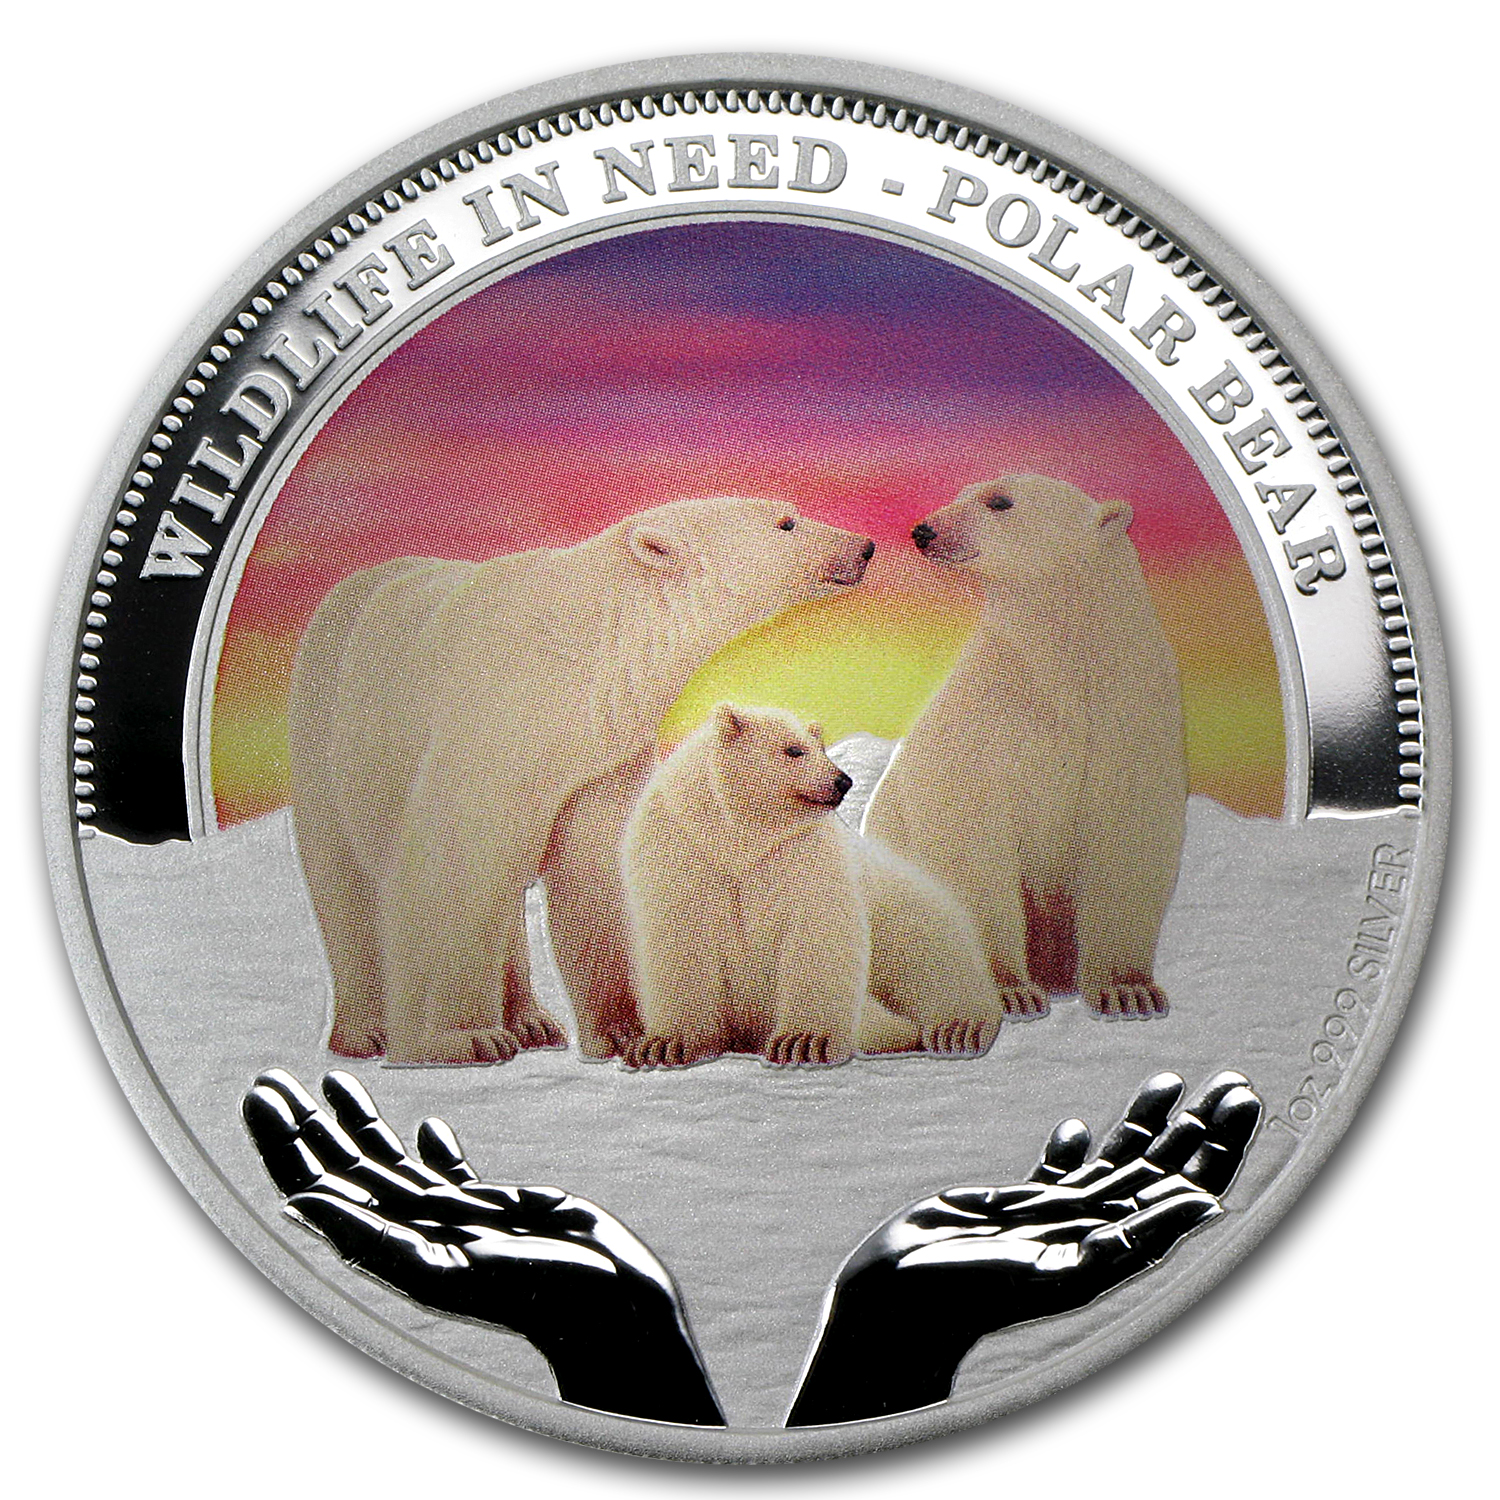 2012 Tuvalu 1 oz Silver Polar Bear Proof